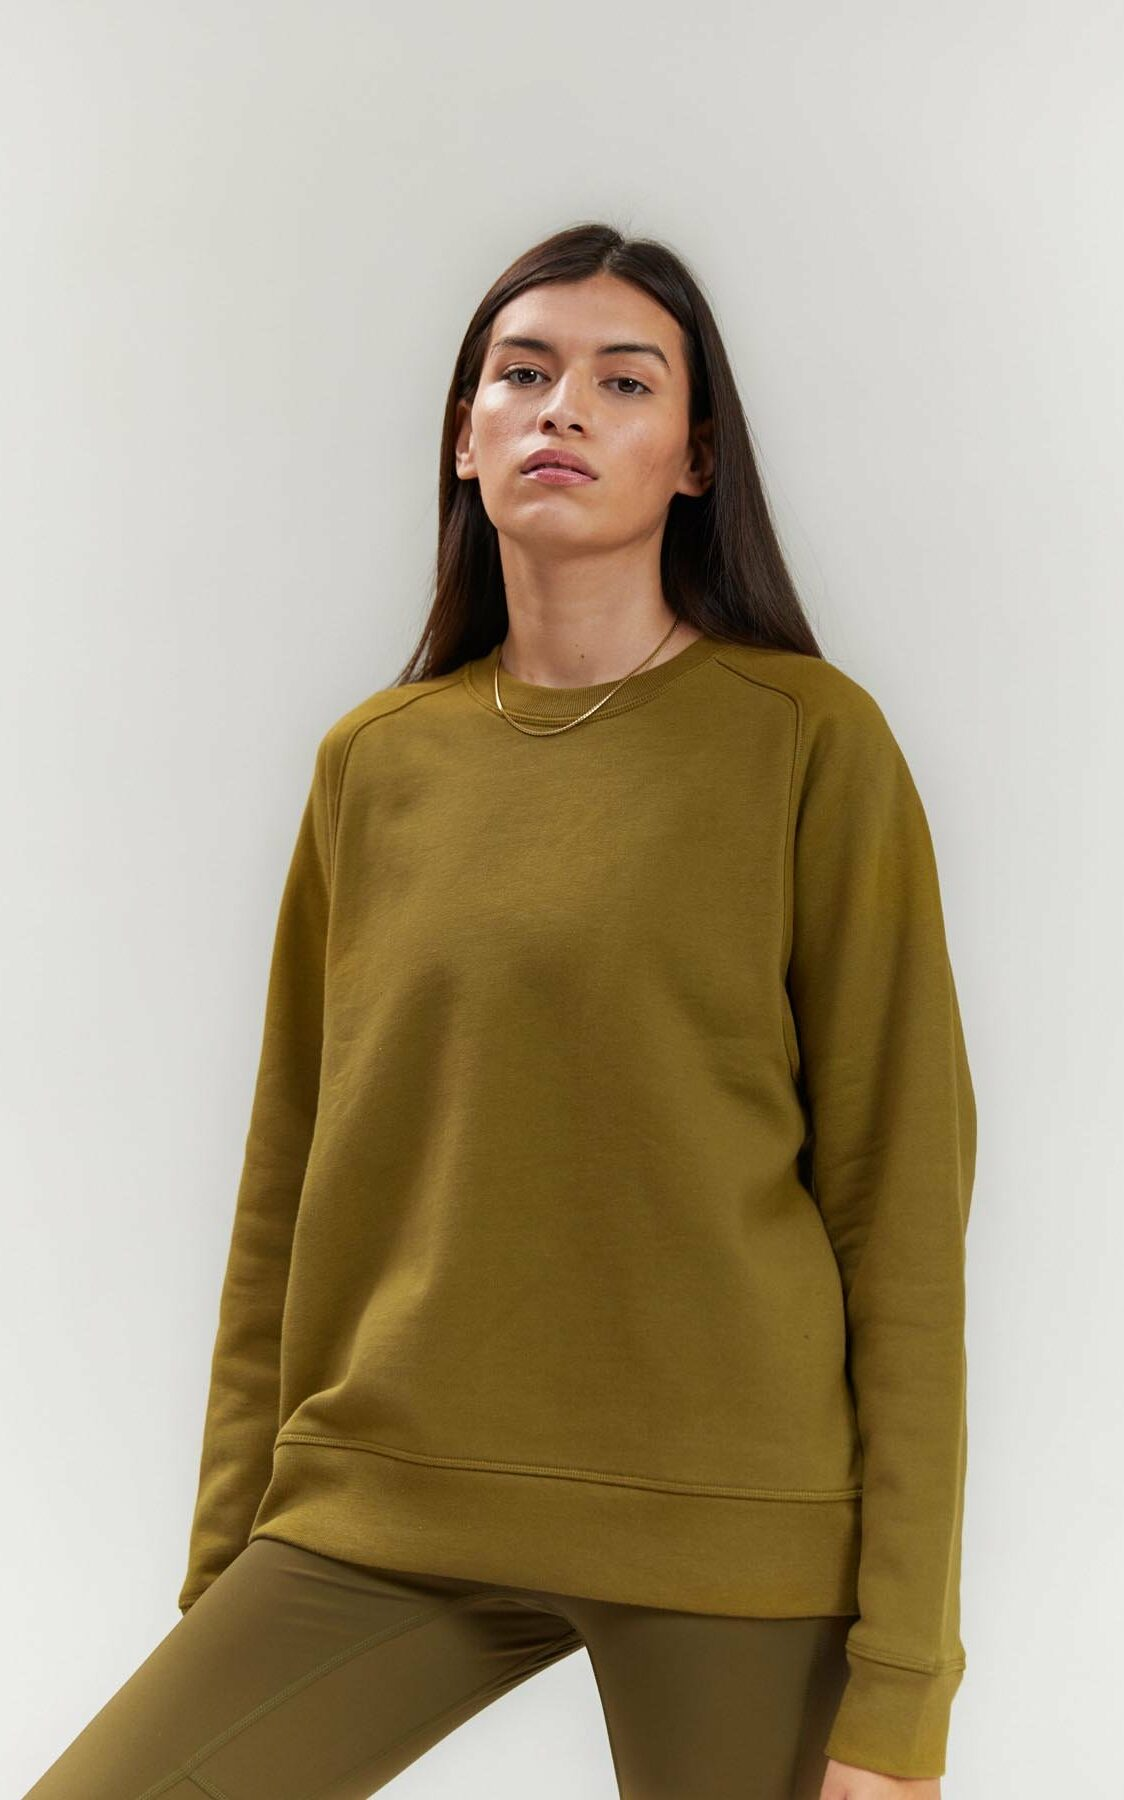 A white person with long straight brown hair stands in an olive colored crewneck.-What does Androgyny in Plus Size Fashion Mean to You? Part I